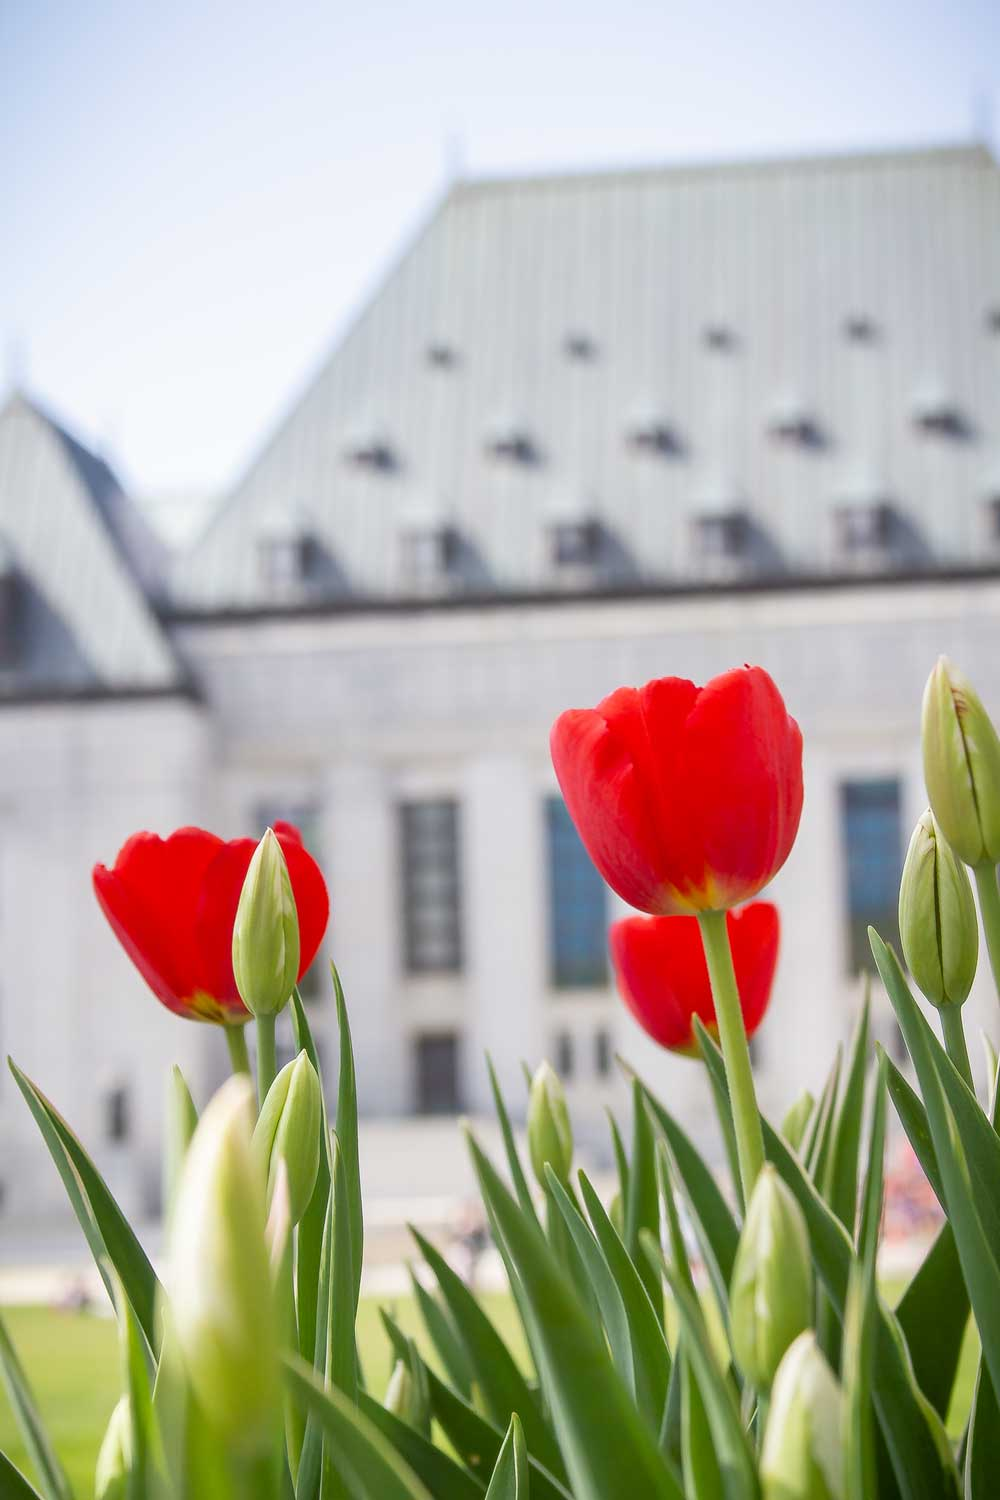 Supreme, Court, Canada, Tulips, Festival, Red